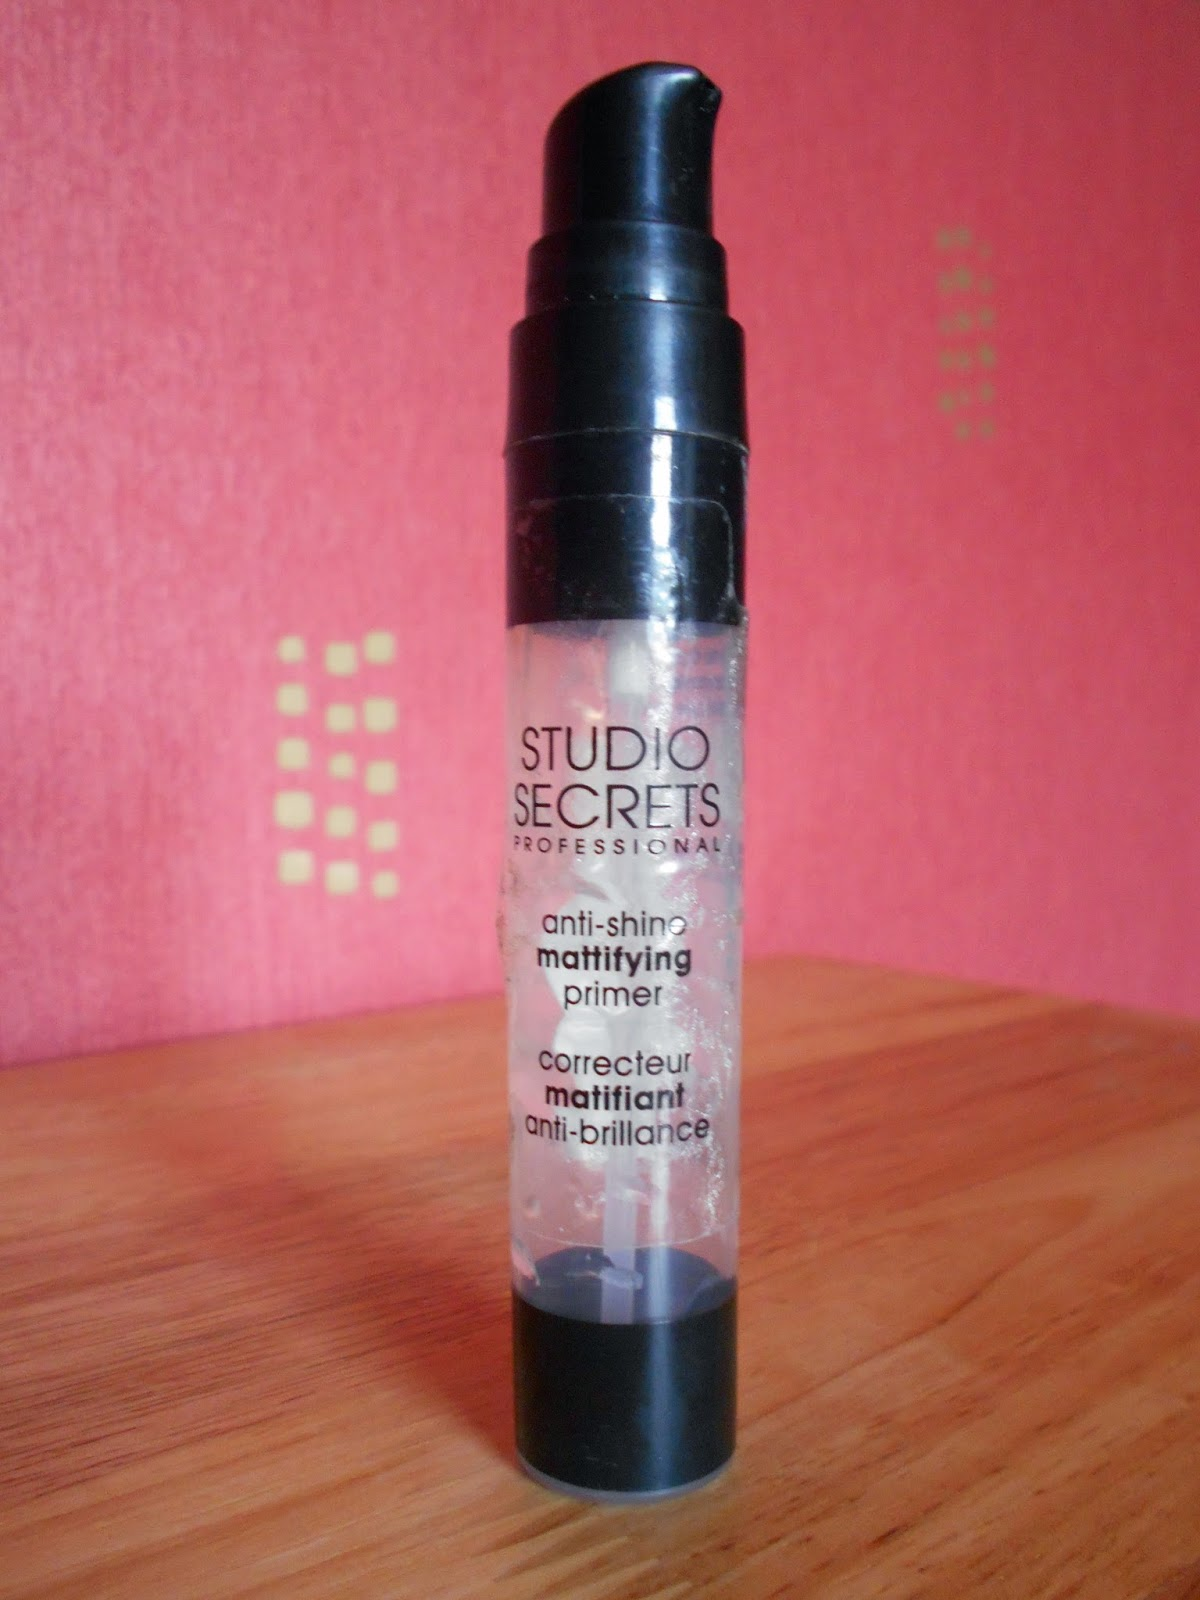 L'Oreal Studio Secrets Anti-Shine Mattifying Primer